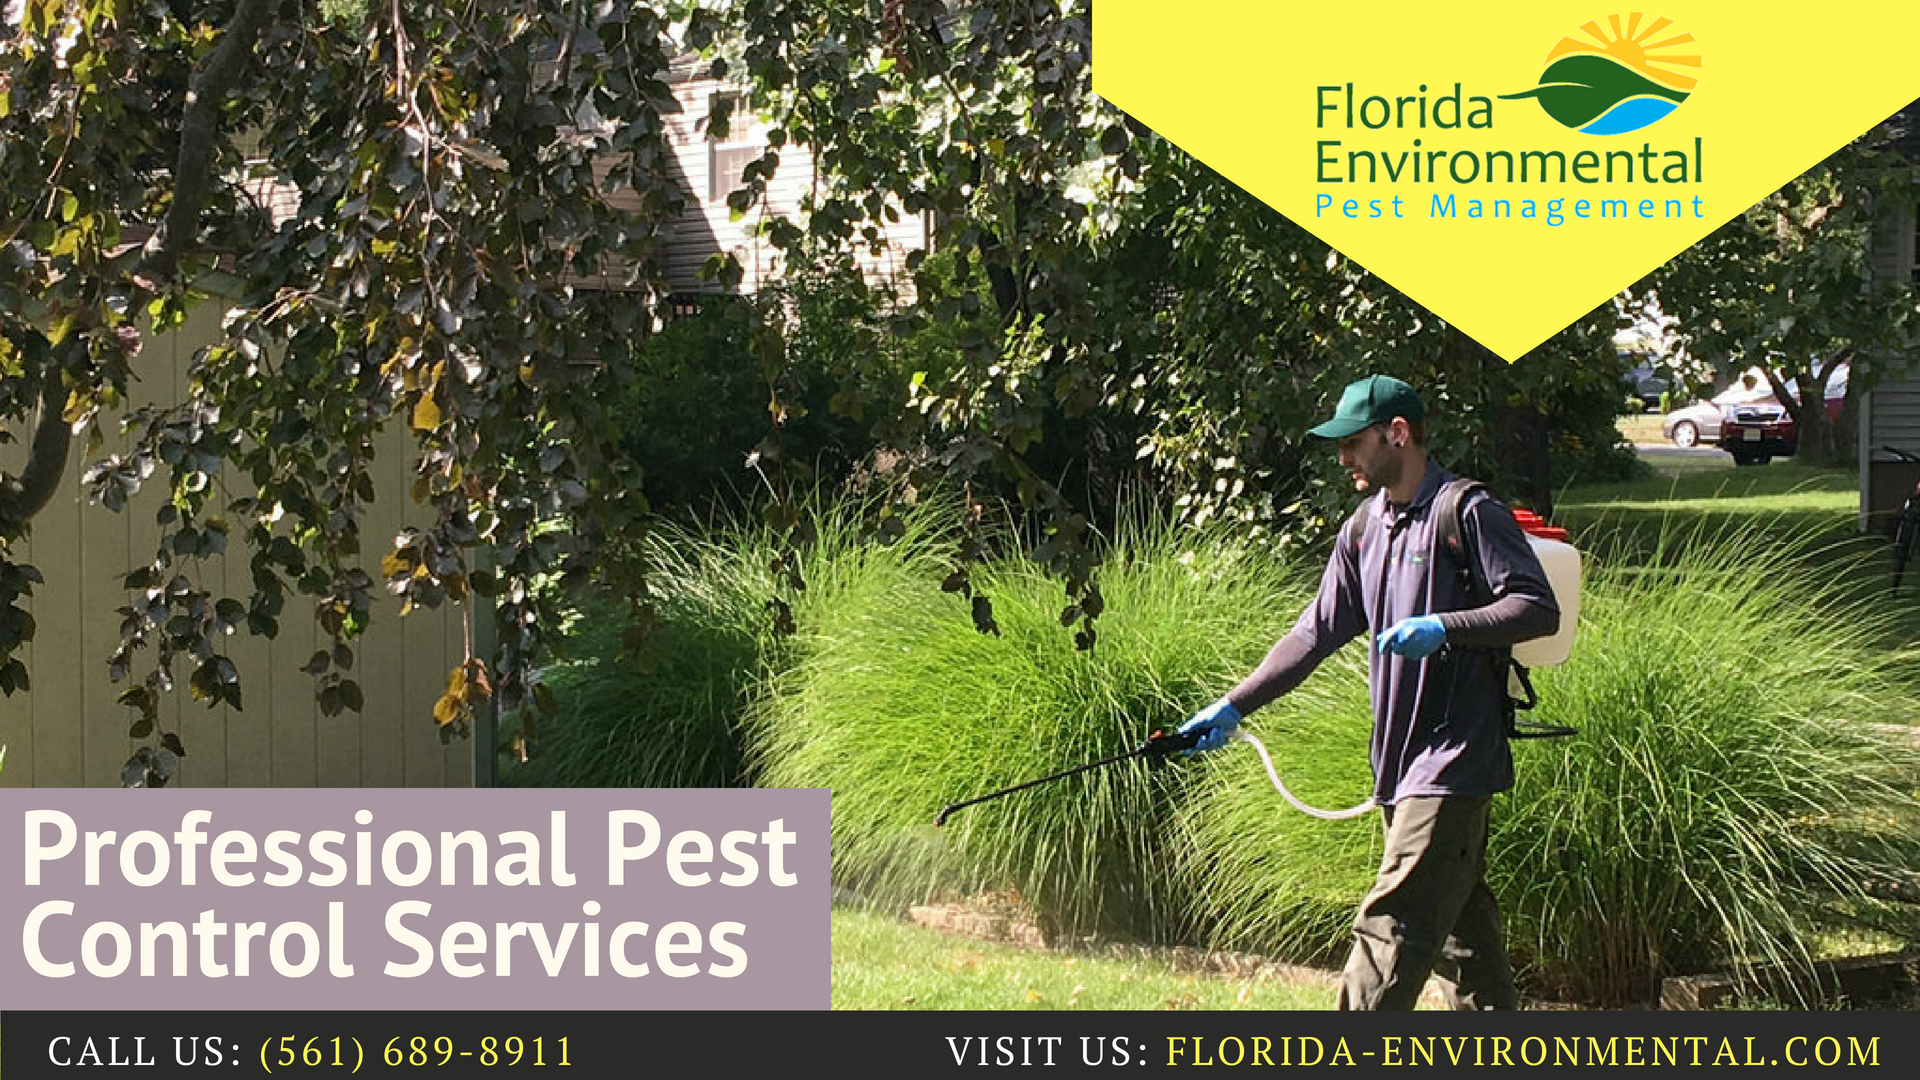 Welcome To Florida Environmental Pest Management Our Pest Control Technicians May Apply Traps To Get Rid Of Certain Pe Pest Control Pest Spray Pest Management